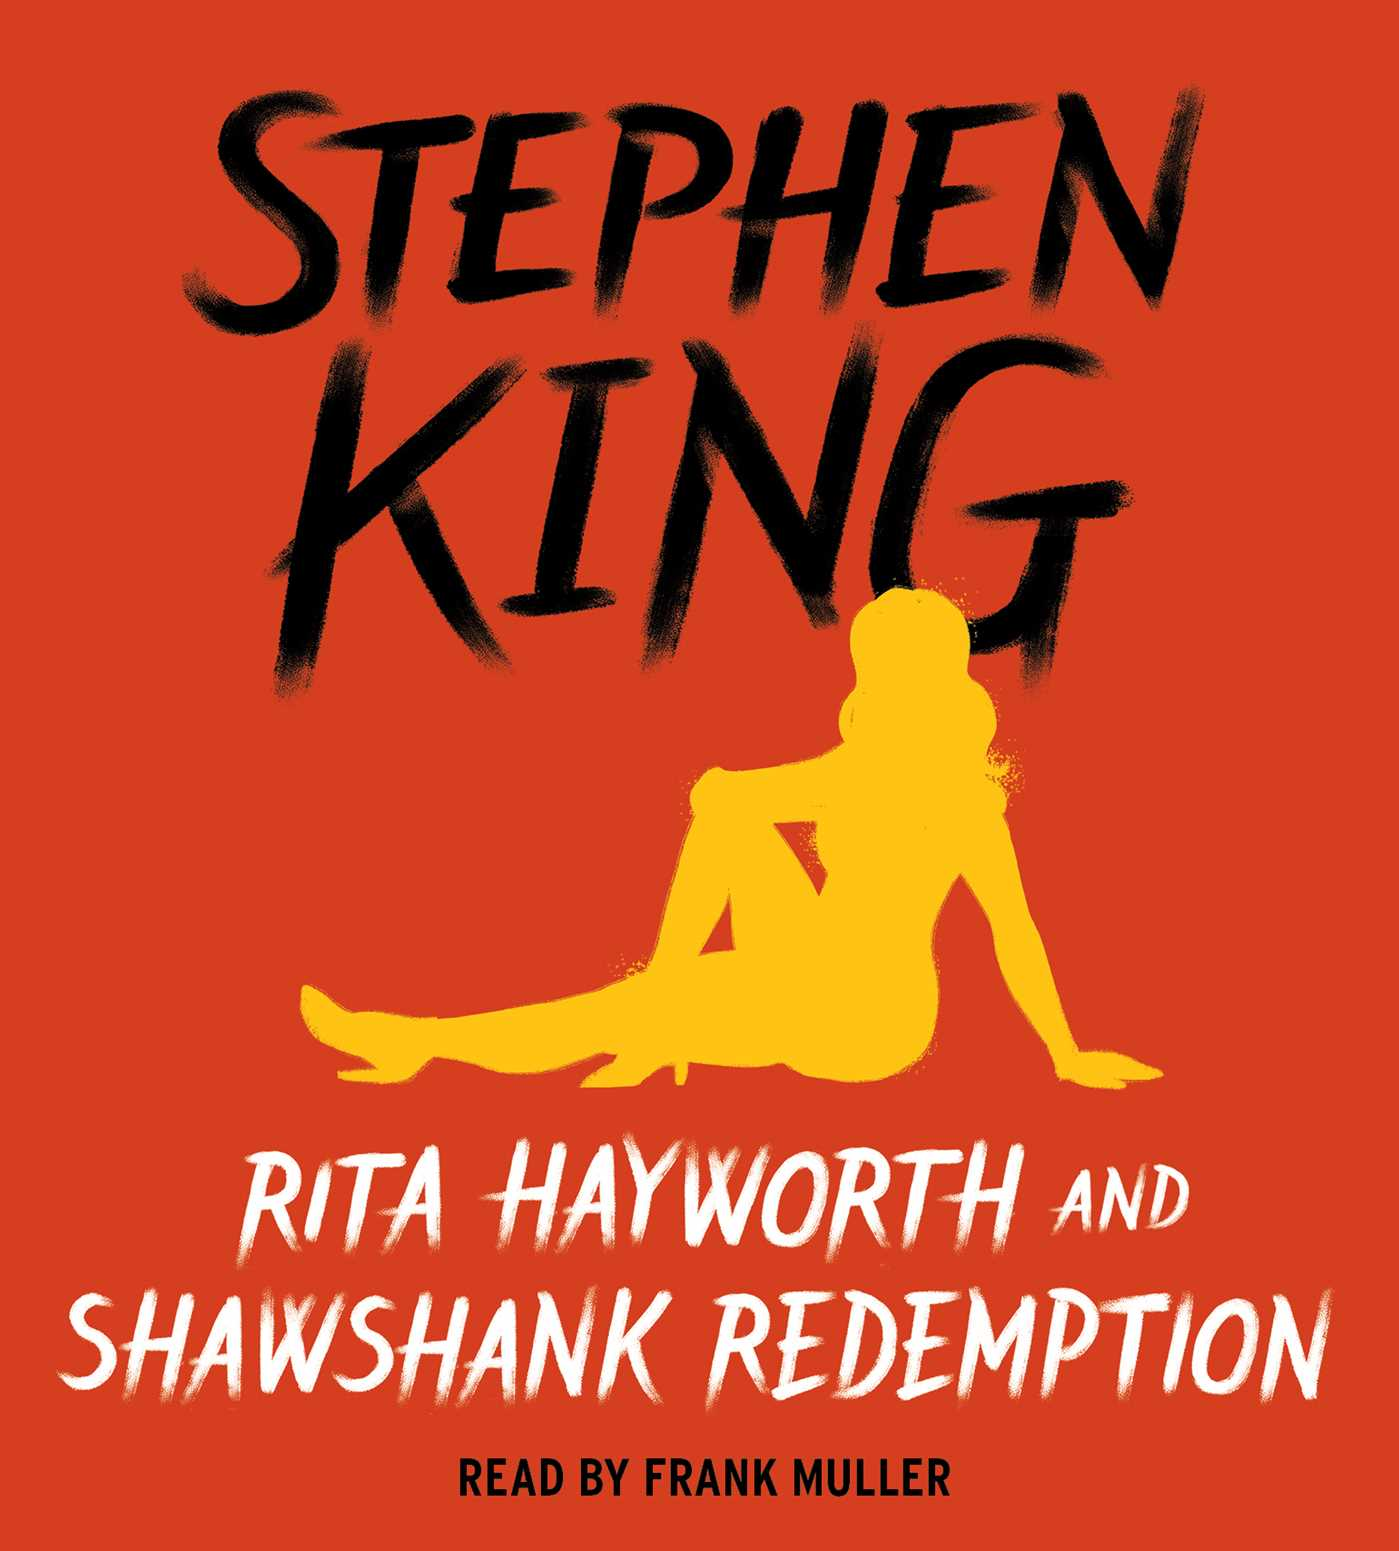 Rita hayworth and shawshank redemption 9781508218531 hr